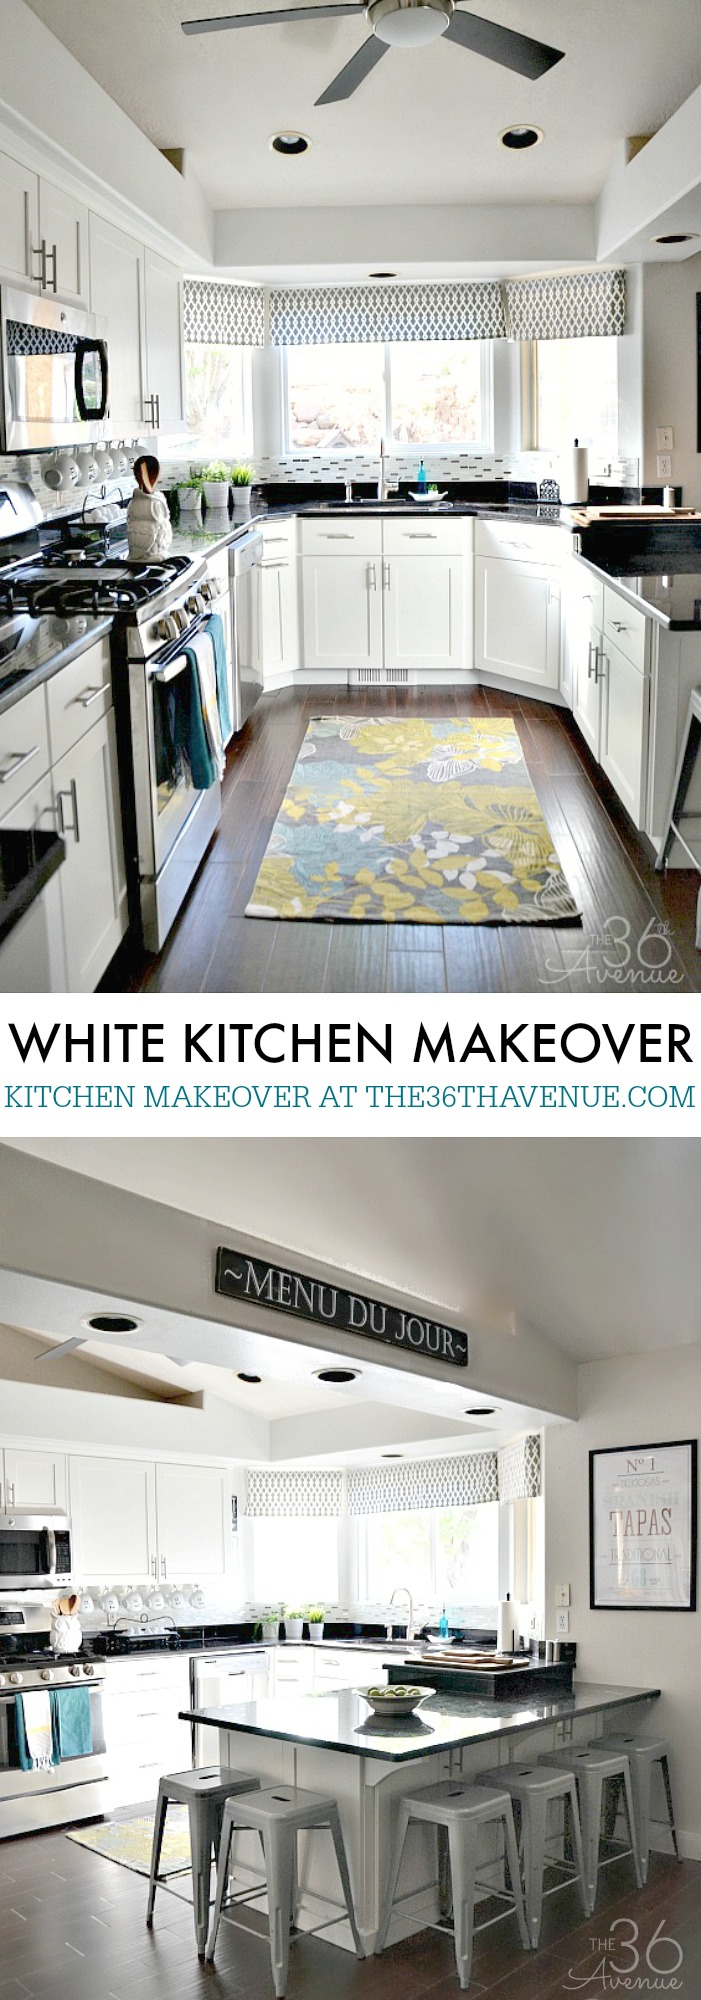 White Kitchen Decor Ideas - Gorgeous white kitchen makeovers and great tips and ideas of how to decorate a kitchen!